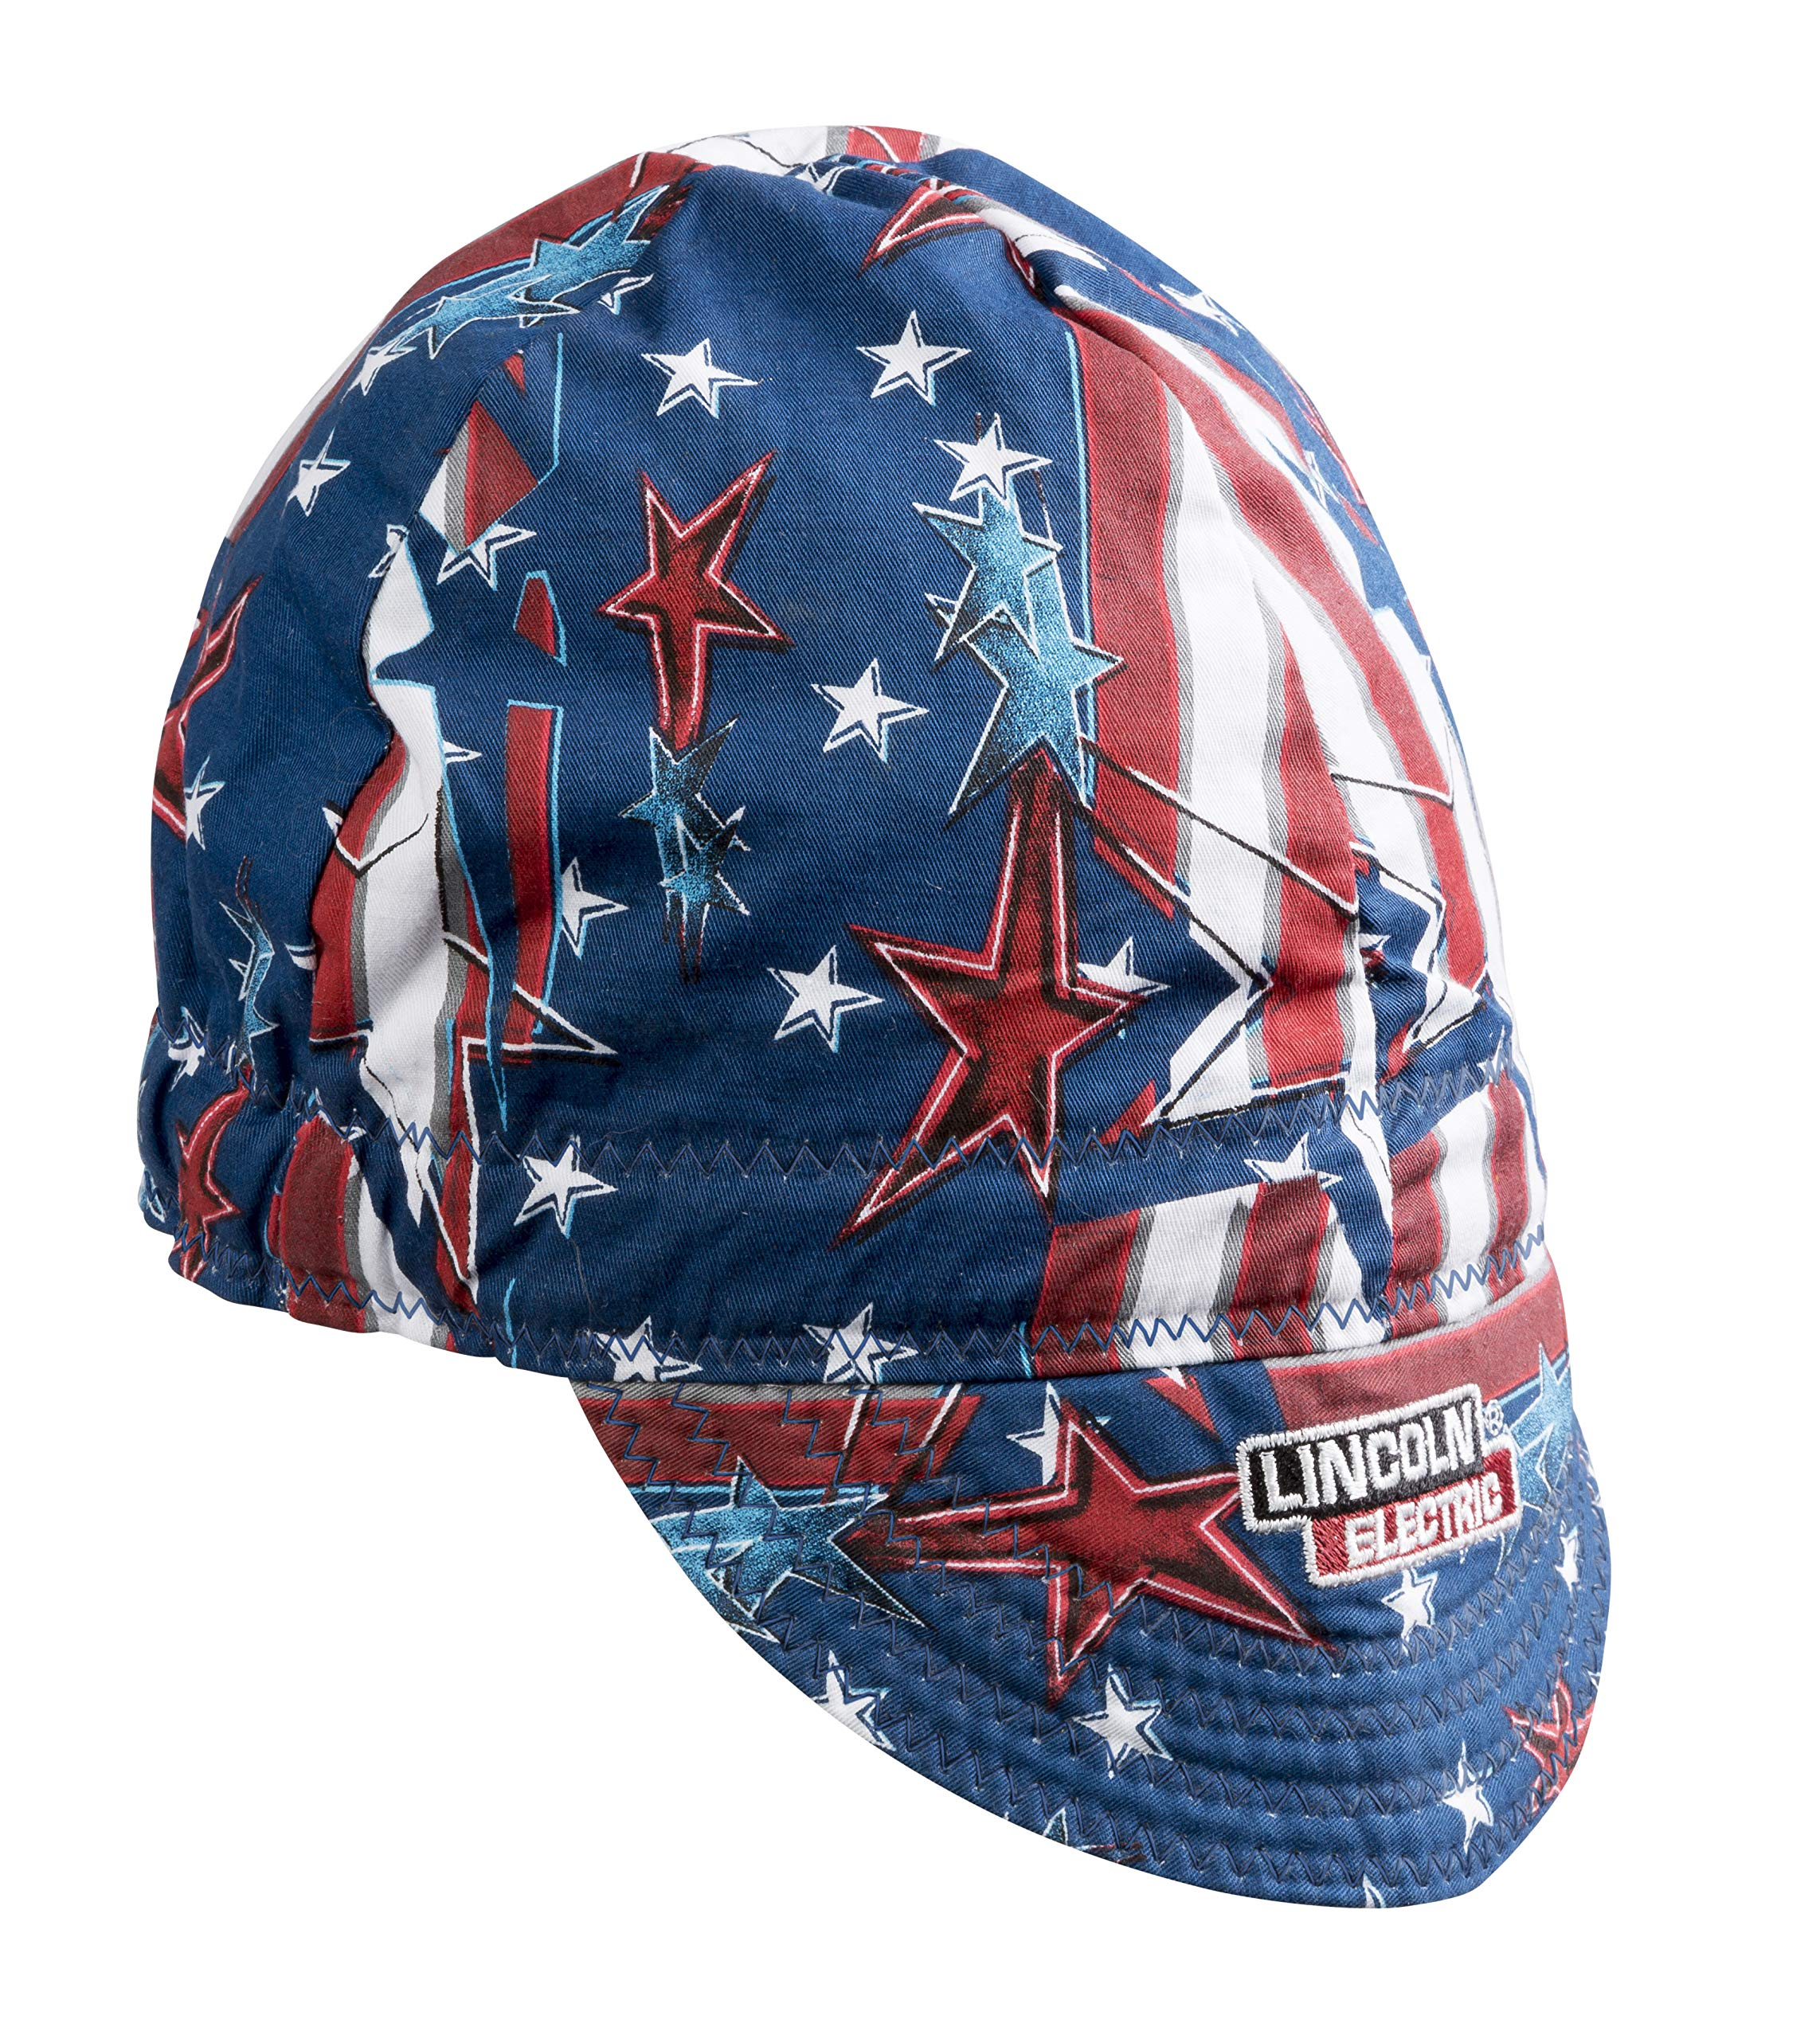 Lincoln Electric Welding Cap| Mesh Inside Liner | All American Print |K3203-ALL by Lincoln Electric